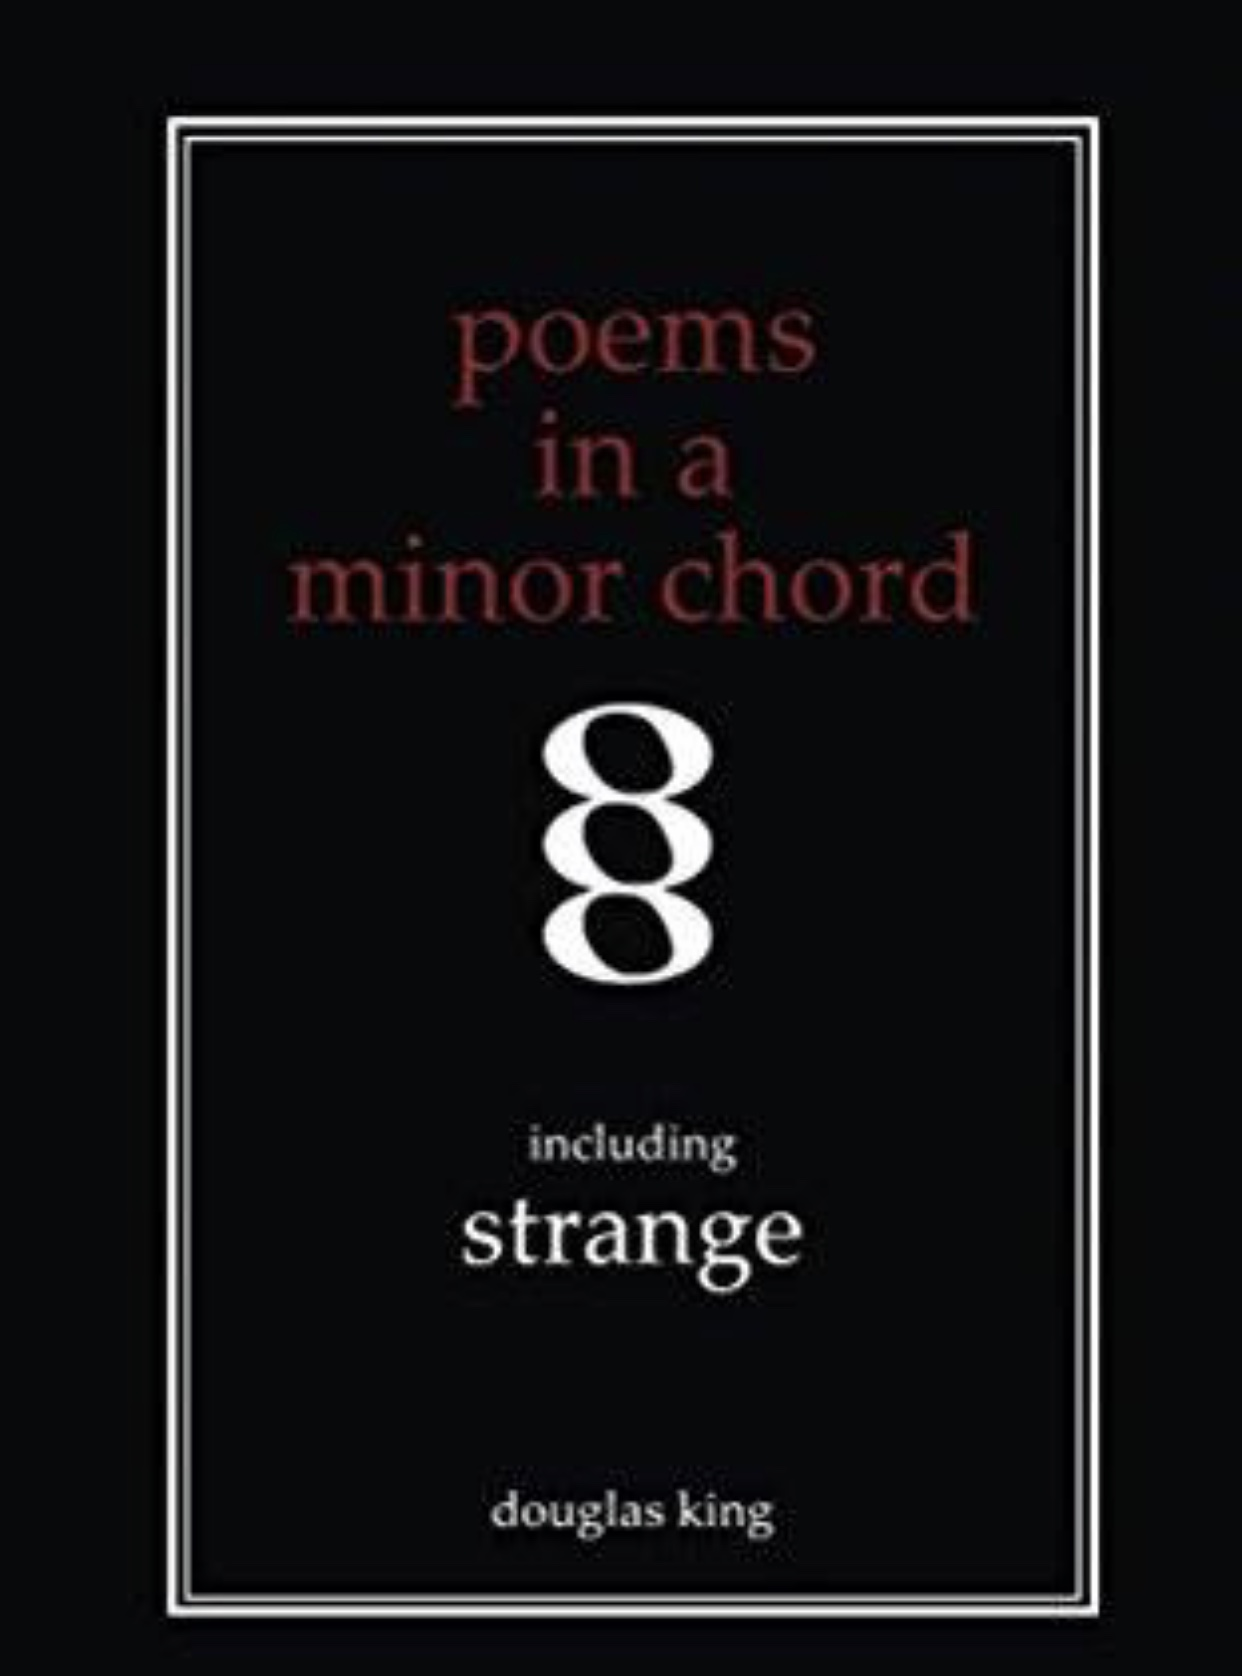 Poems in a Minor Chord. A collection of poetry works by Doug King.